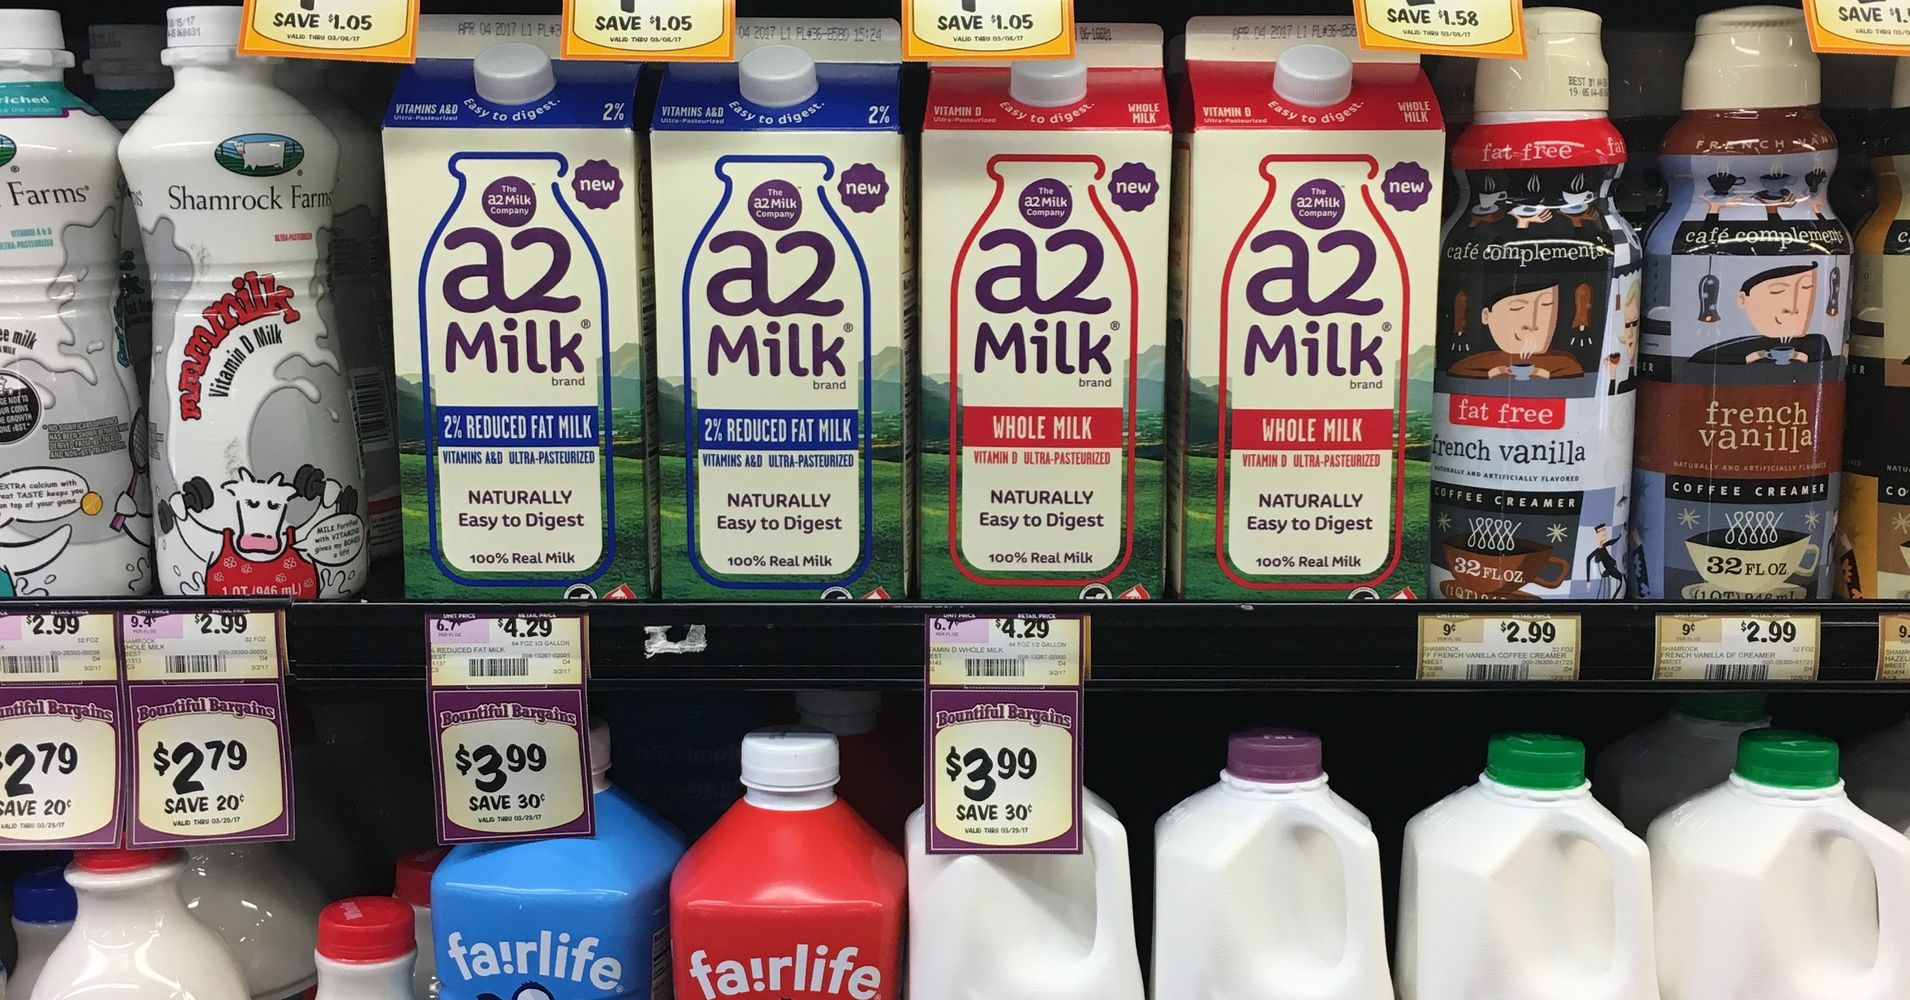 Do Cows Drink Milk >> A2 Milk Is About To Become A Health Food Trend. Here's What You Need To Know. | HuffPost